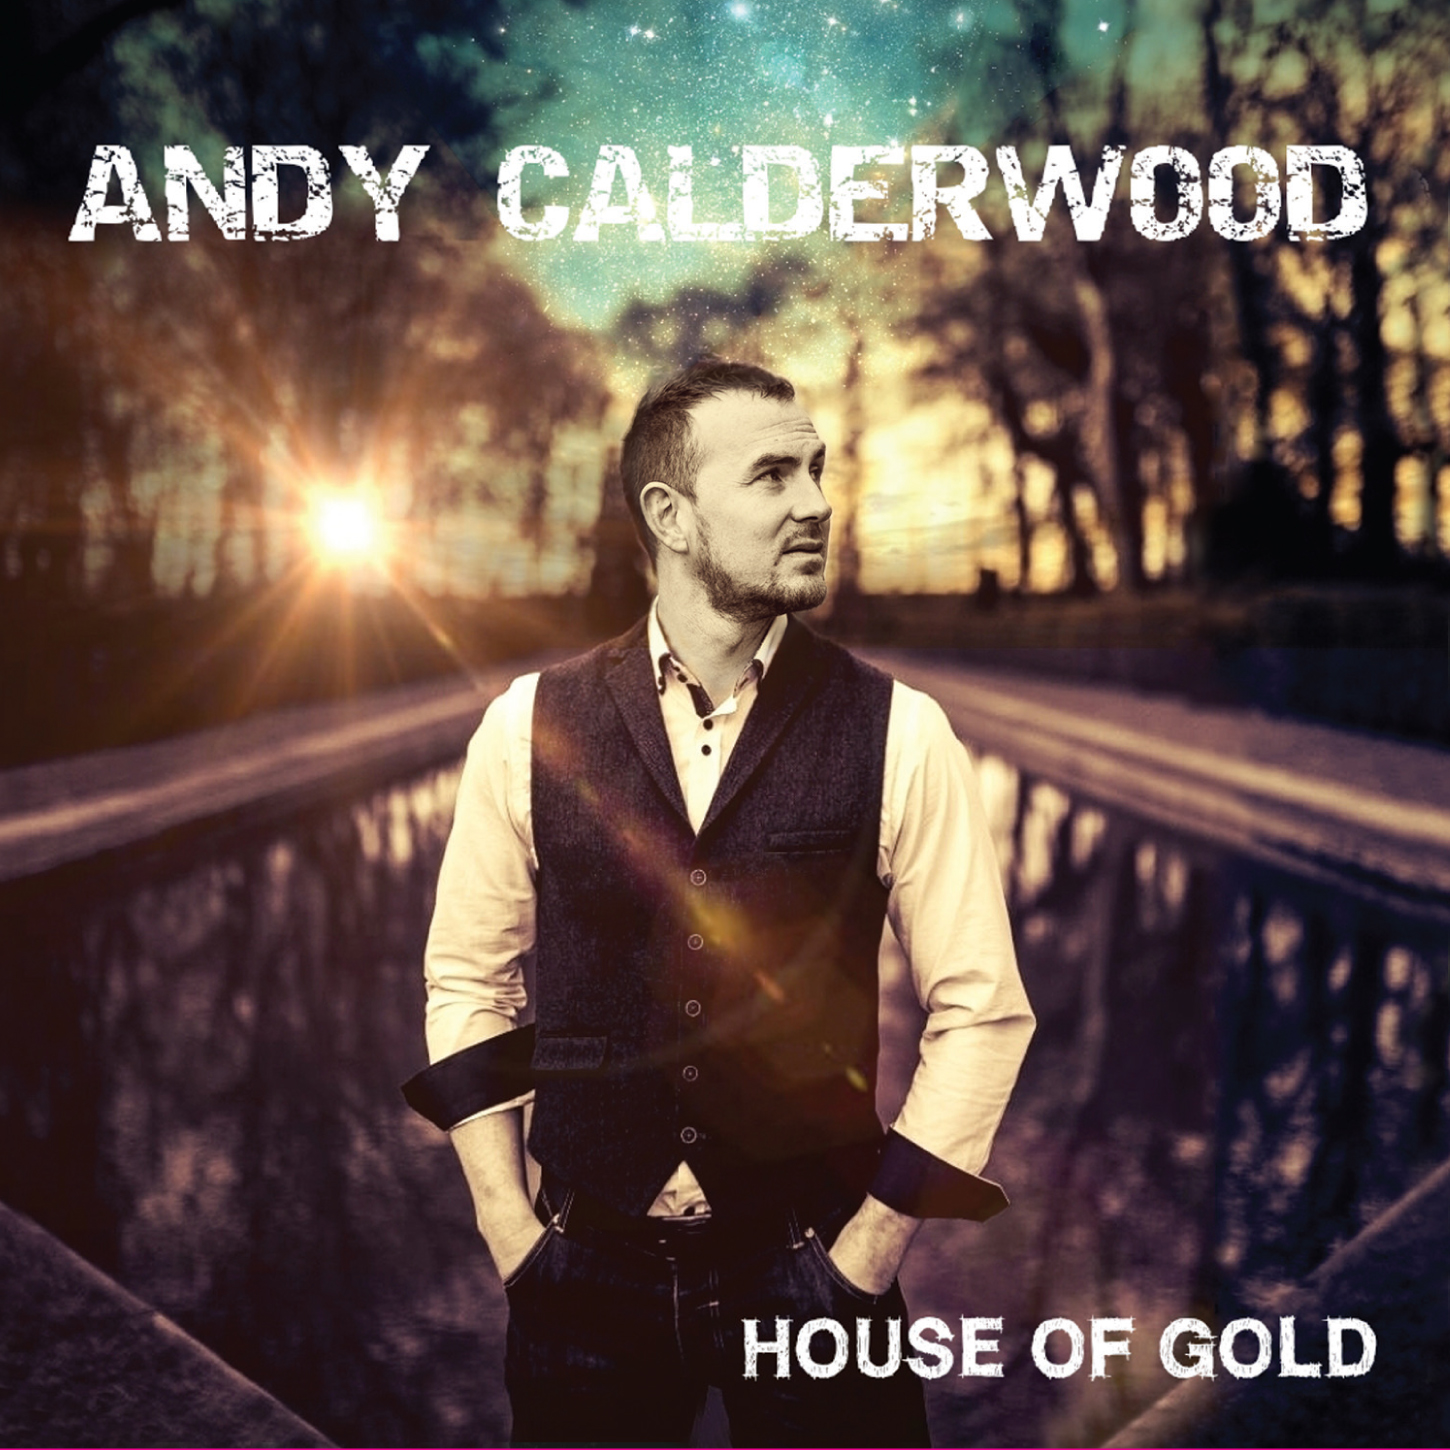 Andy Calderwood | House Of Gold CD Launch Concerts